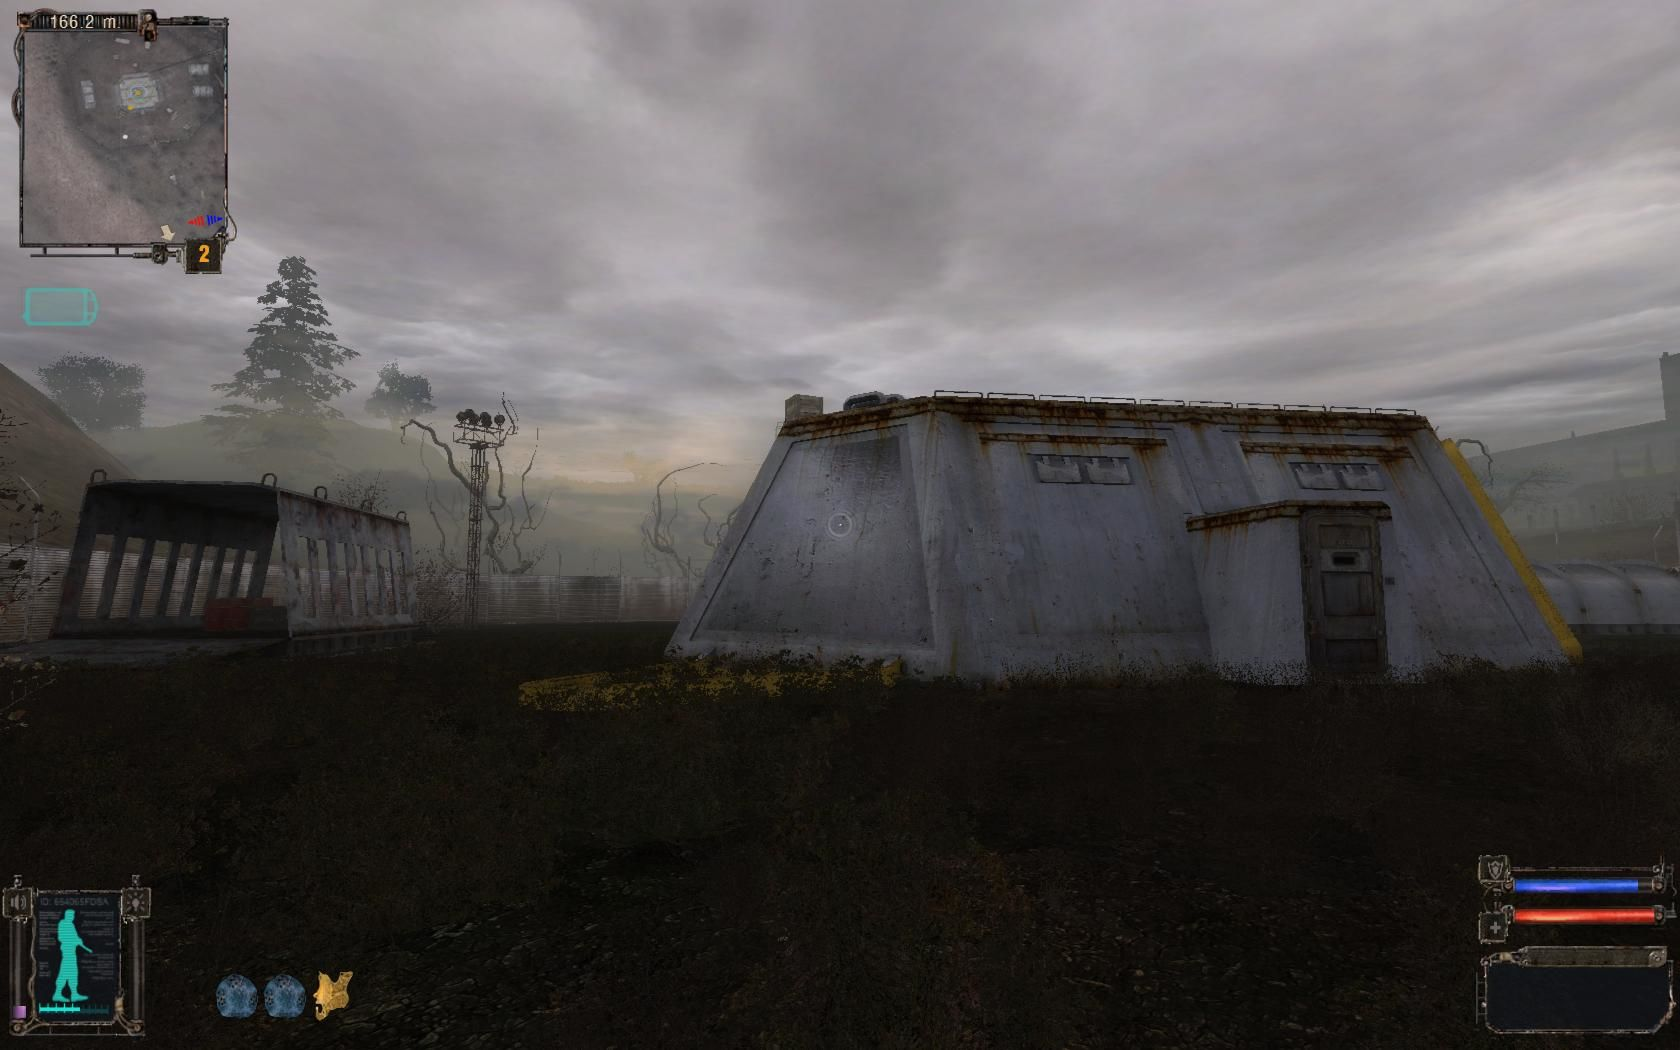 S.T.A.L.K.E.R.: Shadow of Chernobyl Windows Scientific field research lab